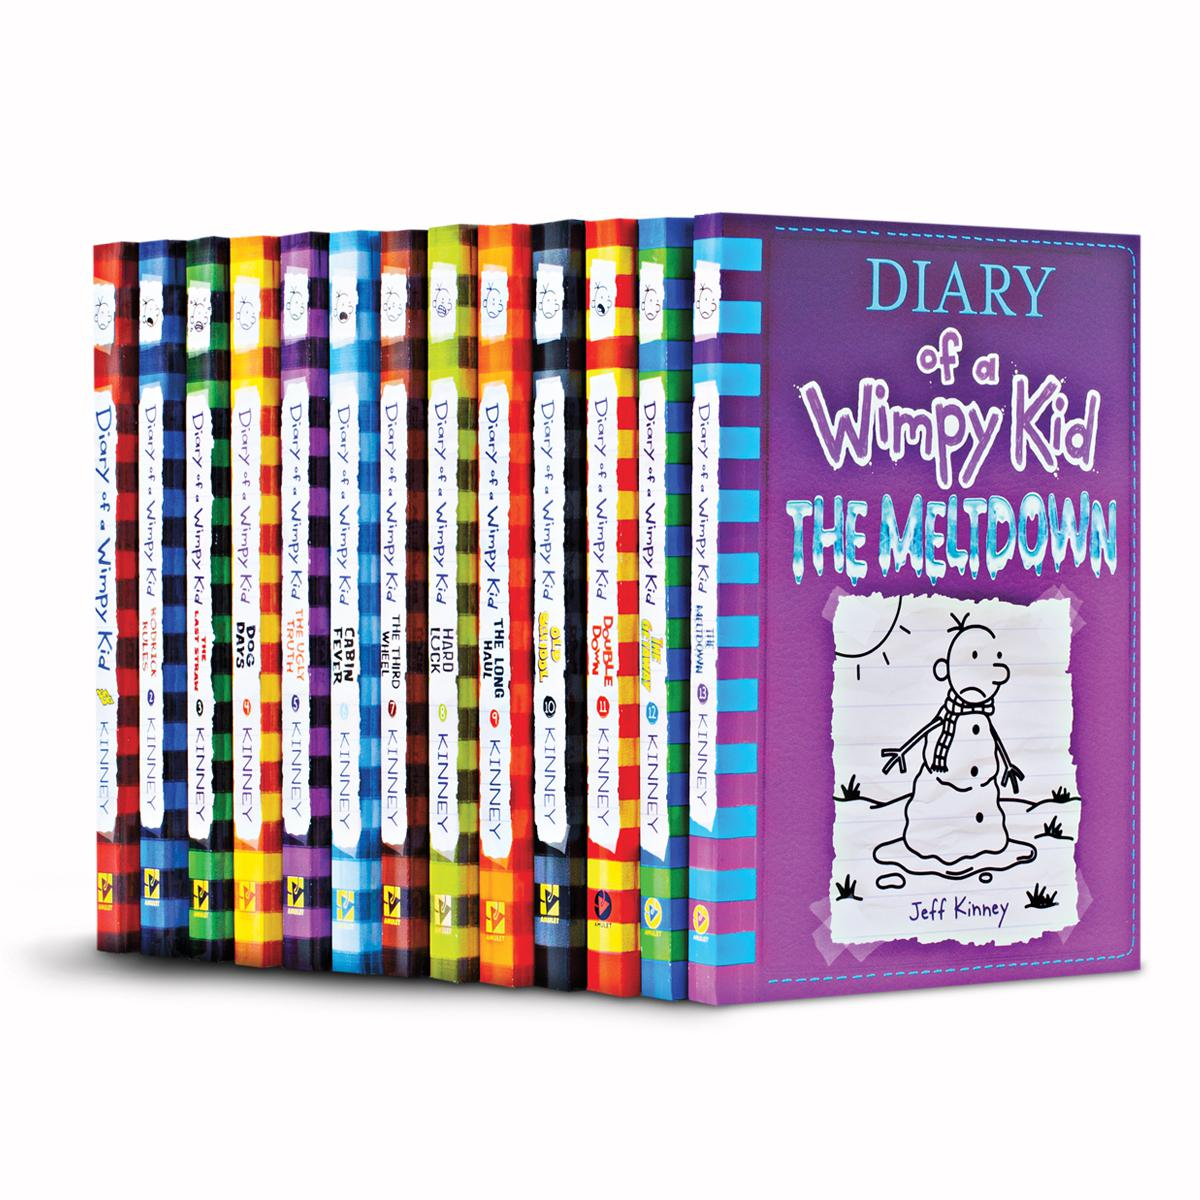 Diary of a Wimpy Kid #1-#14 Pack